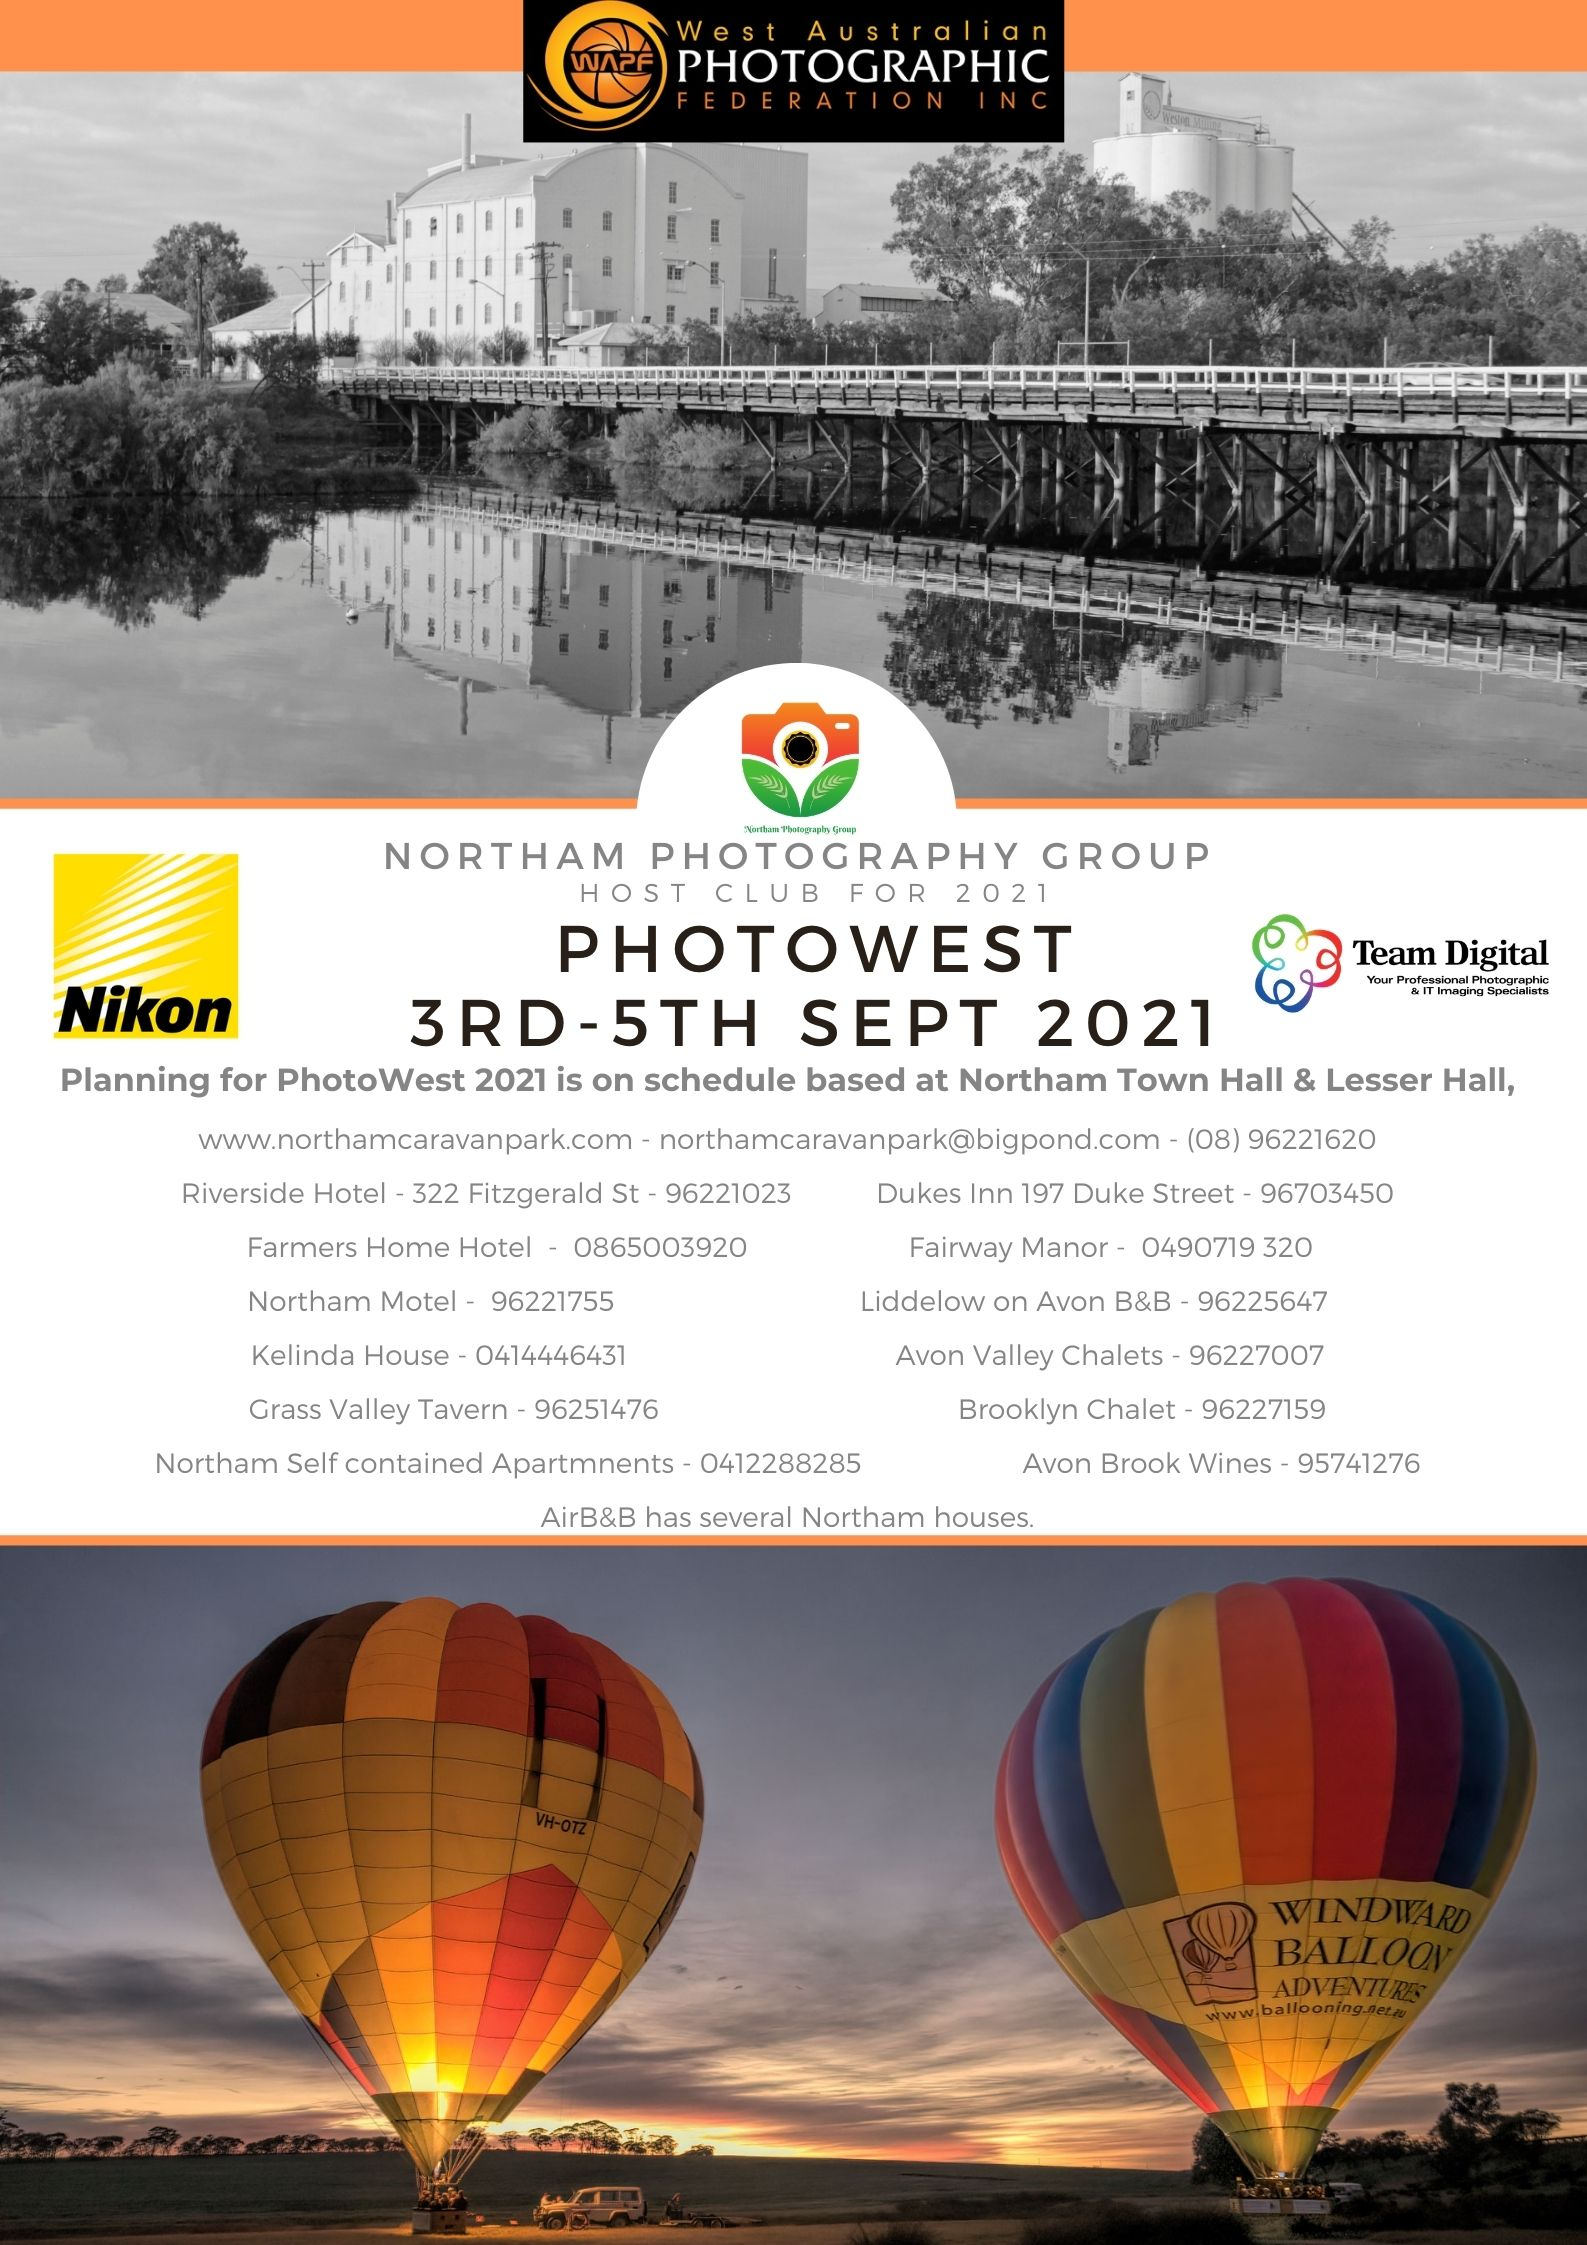 PhotoWest